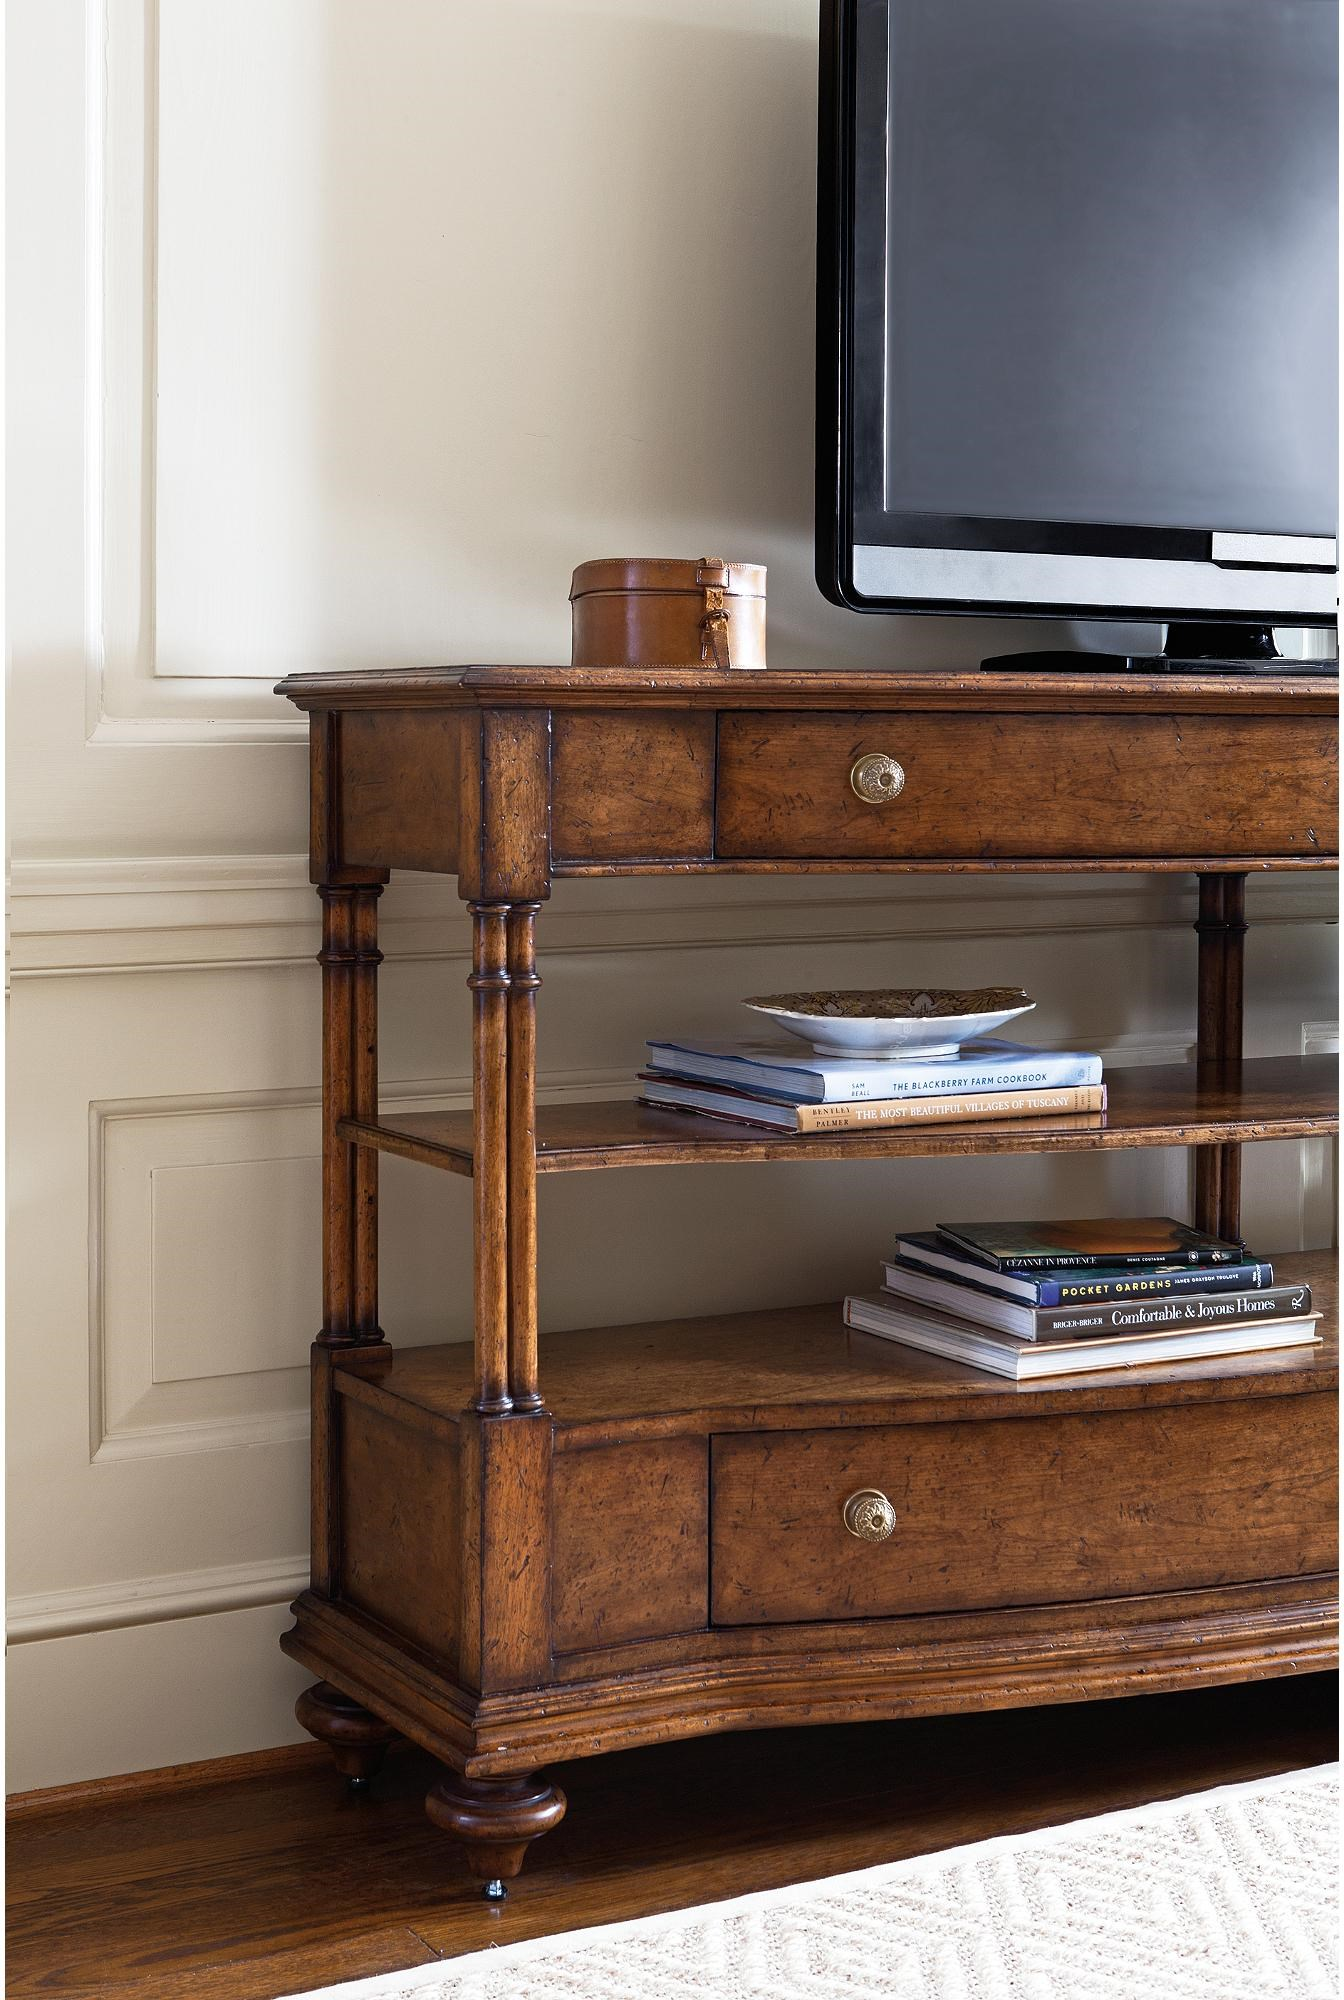 Arrondissement 222 15 30 Rond Media Console With Electrical Outlet By Stanley  Furniture